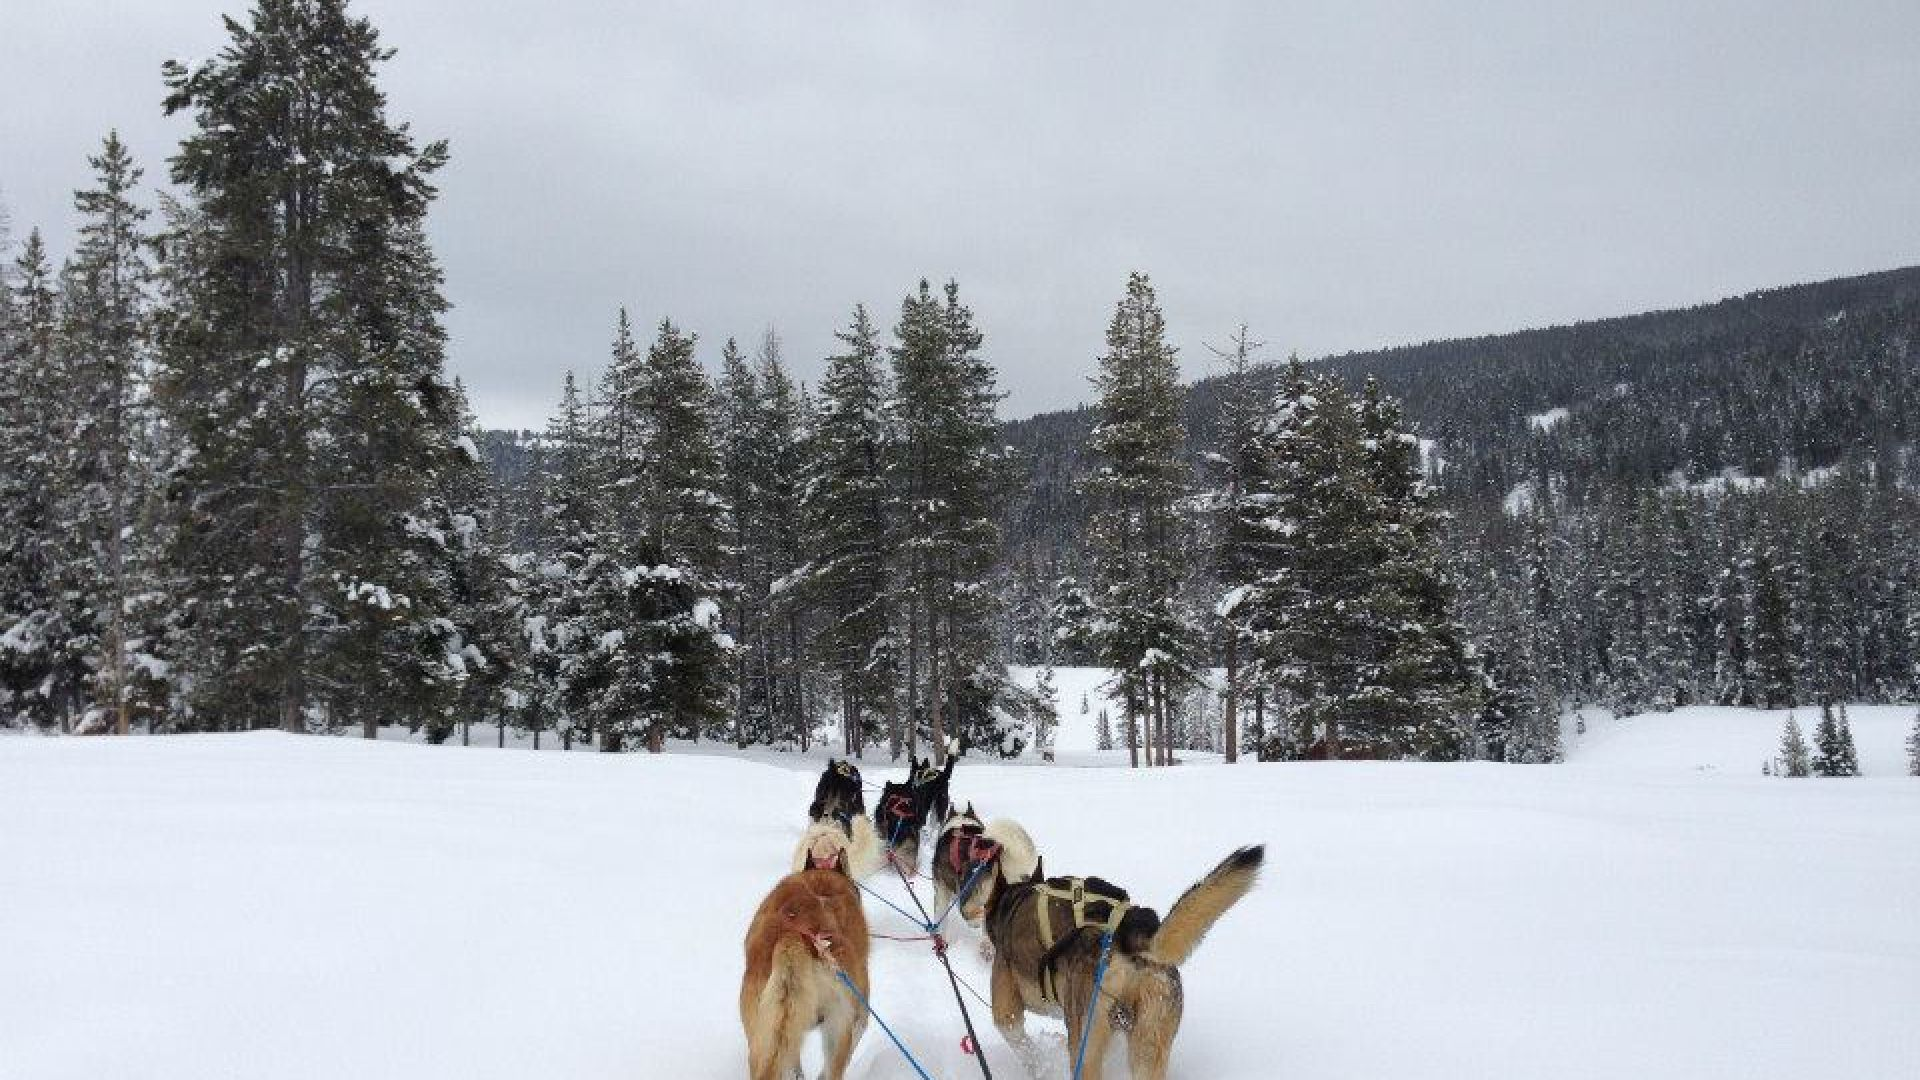 Take a ride on a dog sled!